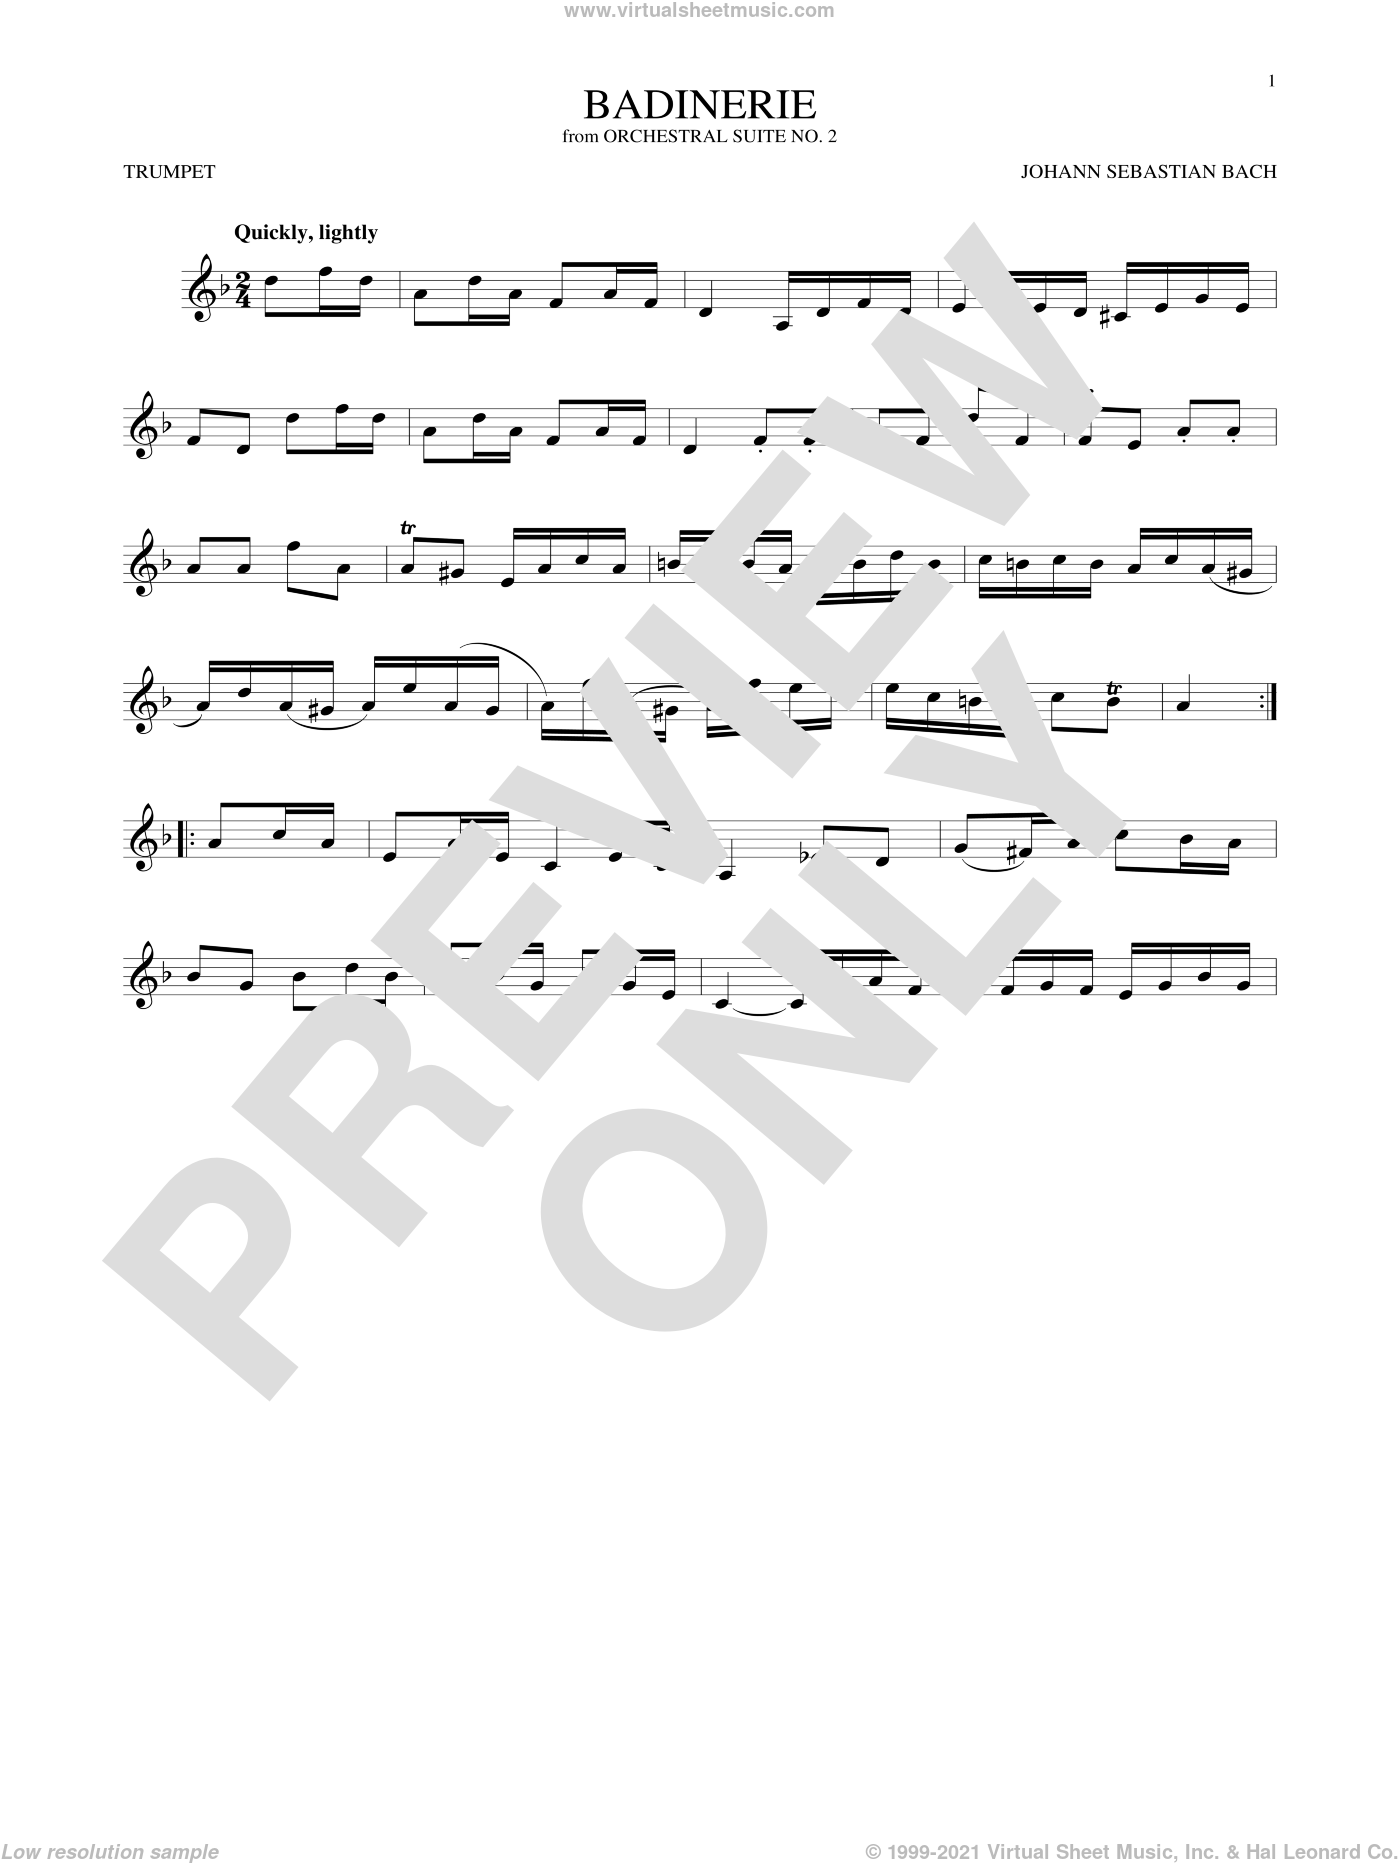 Badinerie (Suite No. 2) sheet music for trumpet solo by Johann Sebastian Bach, classical score, intermediate skill level